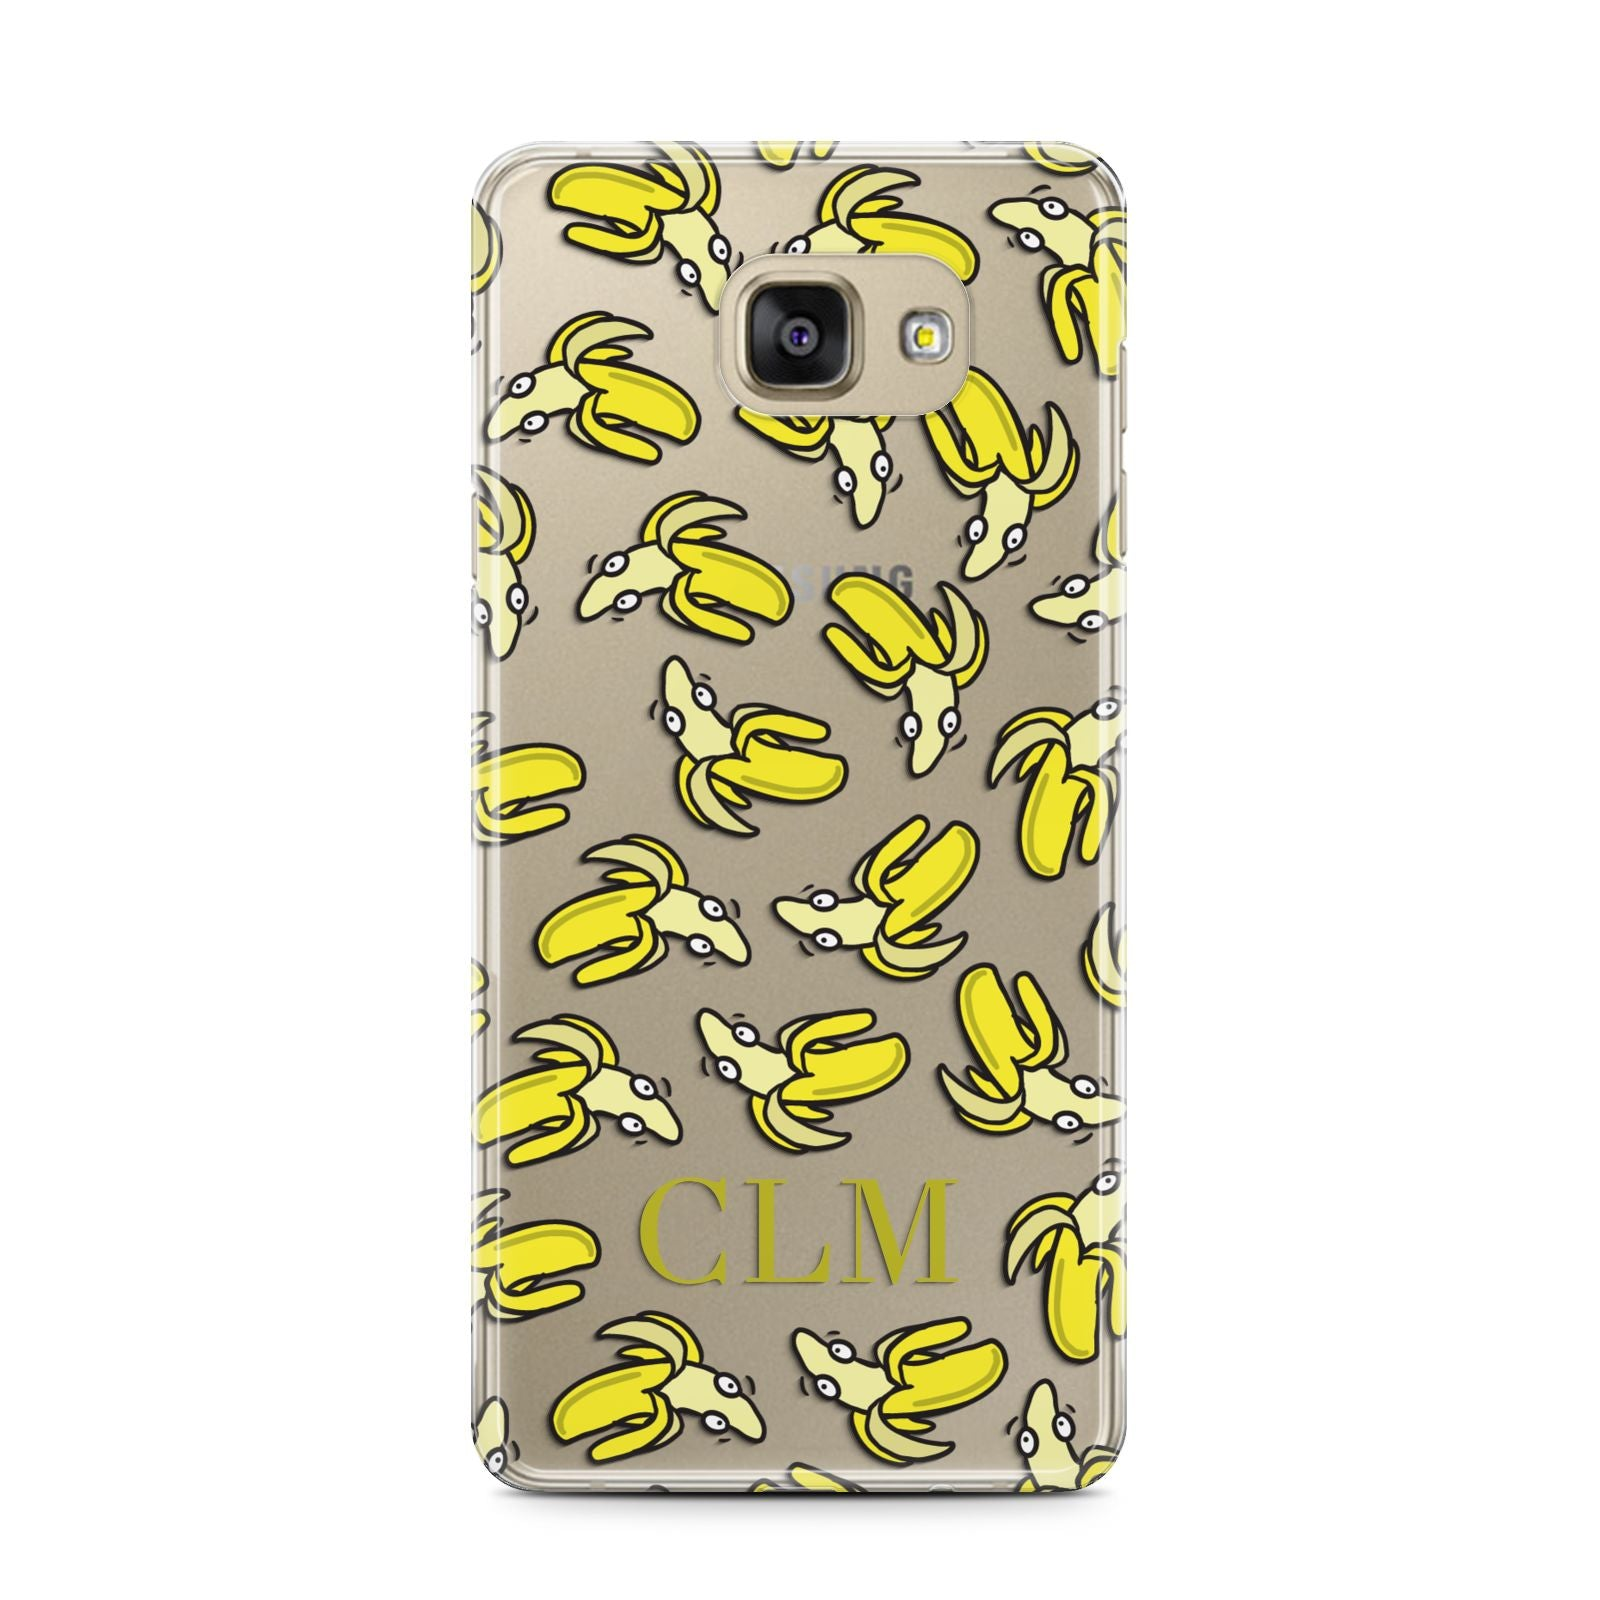 Personalised Banana Initials Clear Samsung Galaxy A7 2016 Case on gold phone